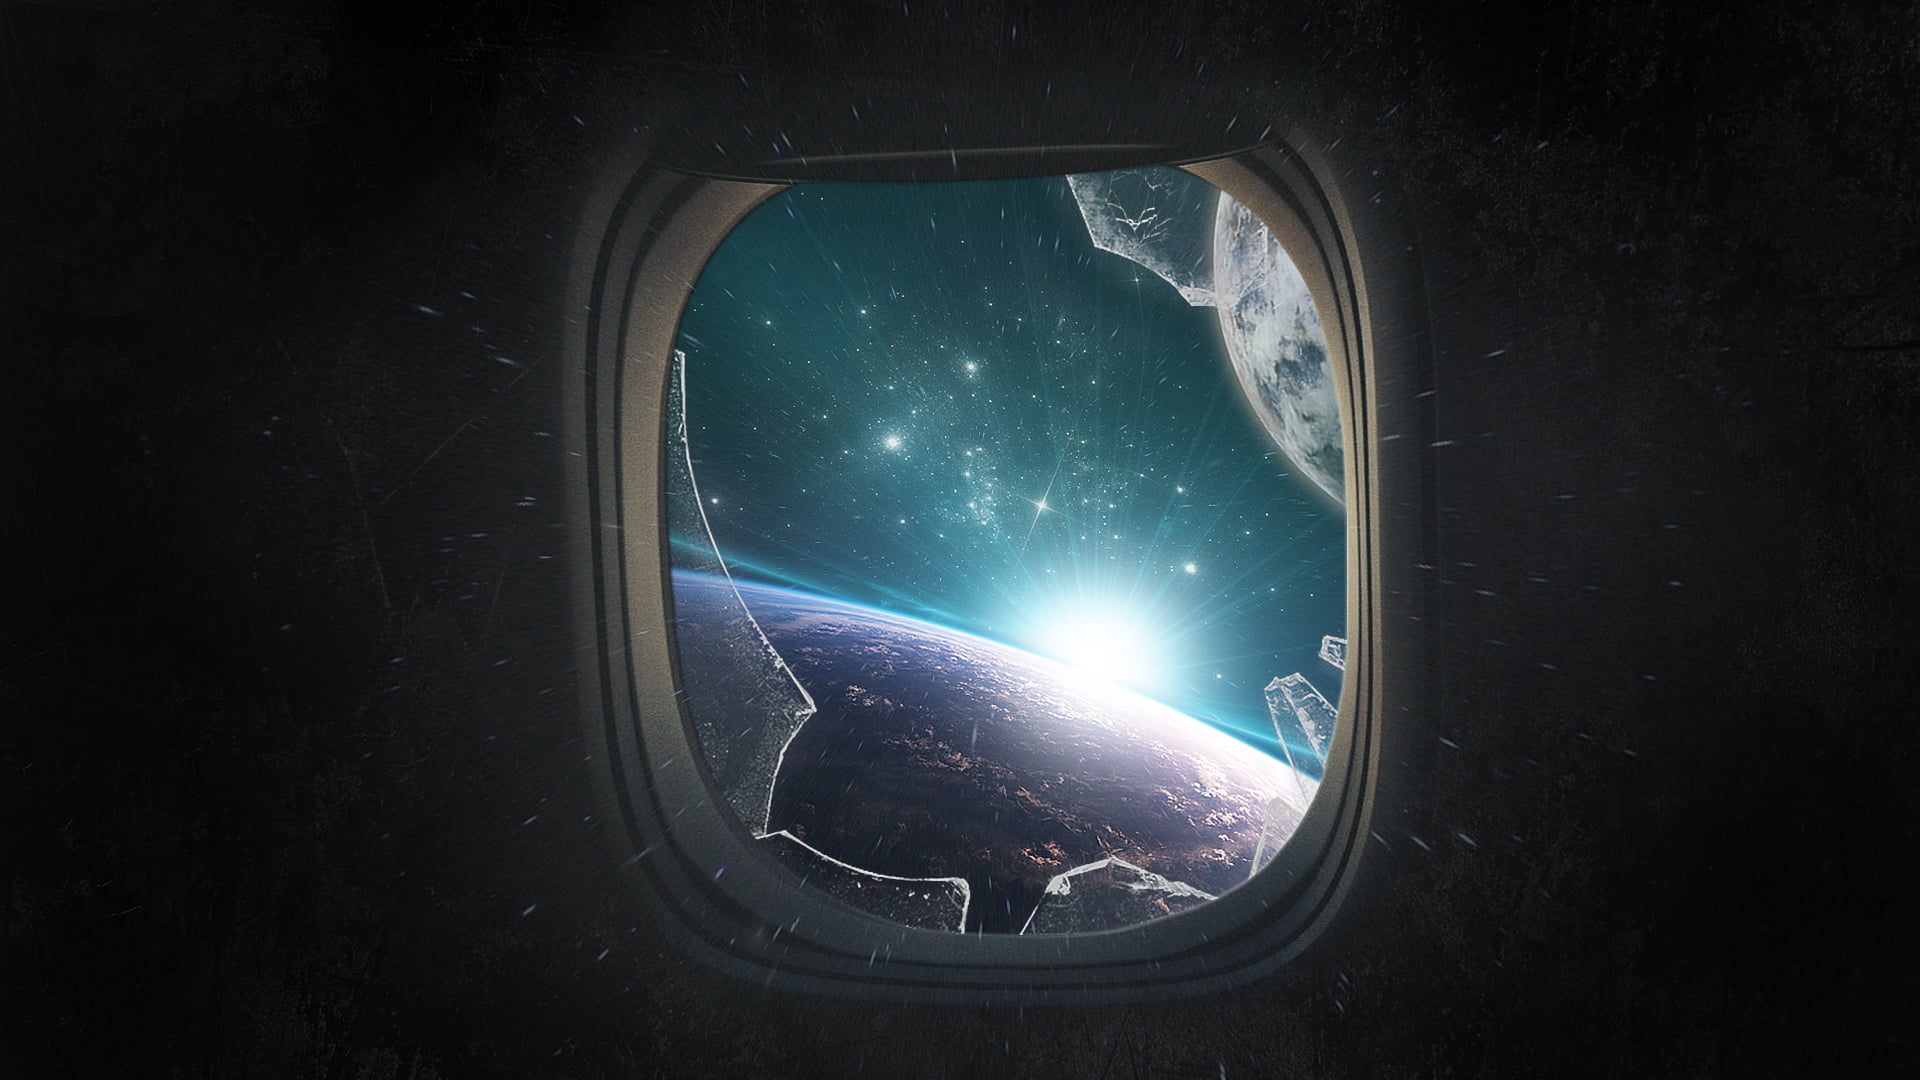 Broken Iphone X Wallpaper Broken Plane Window With Universe Graphic Wallpaper Hd